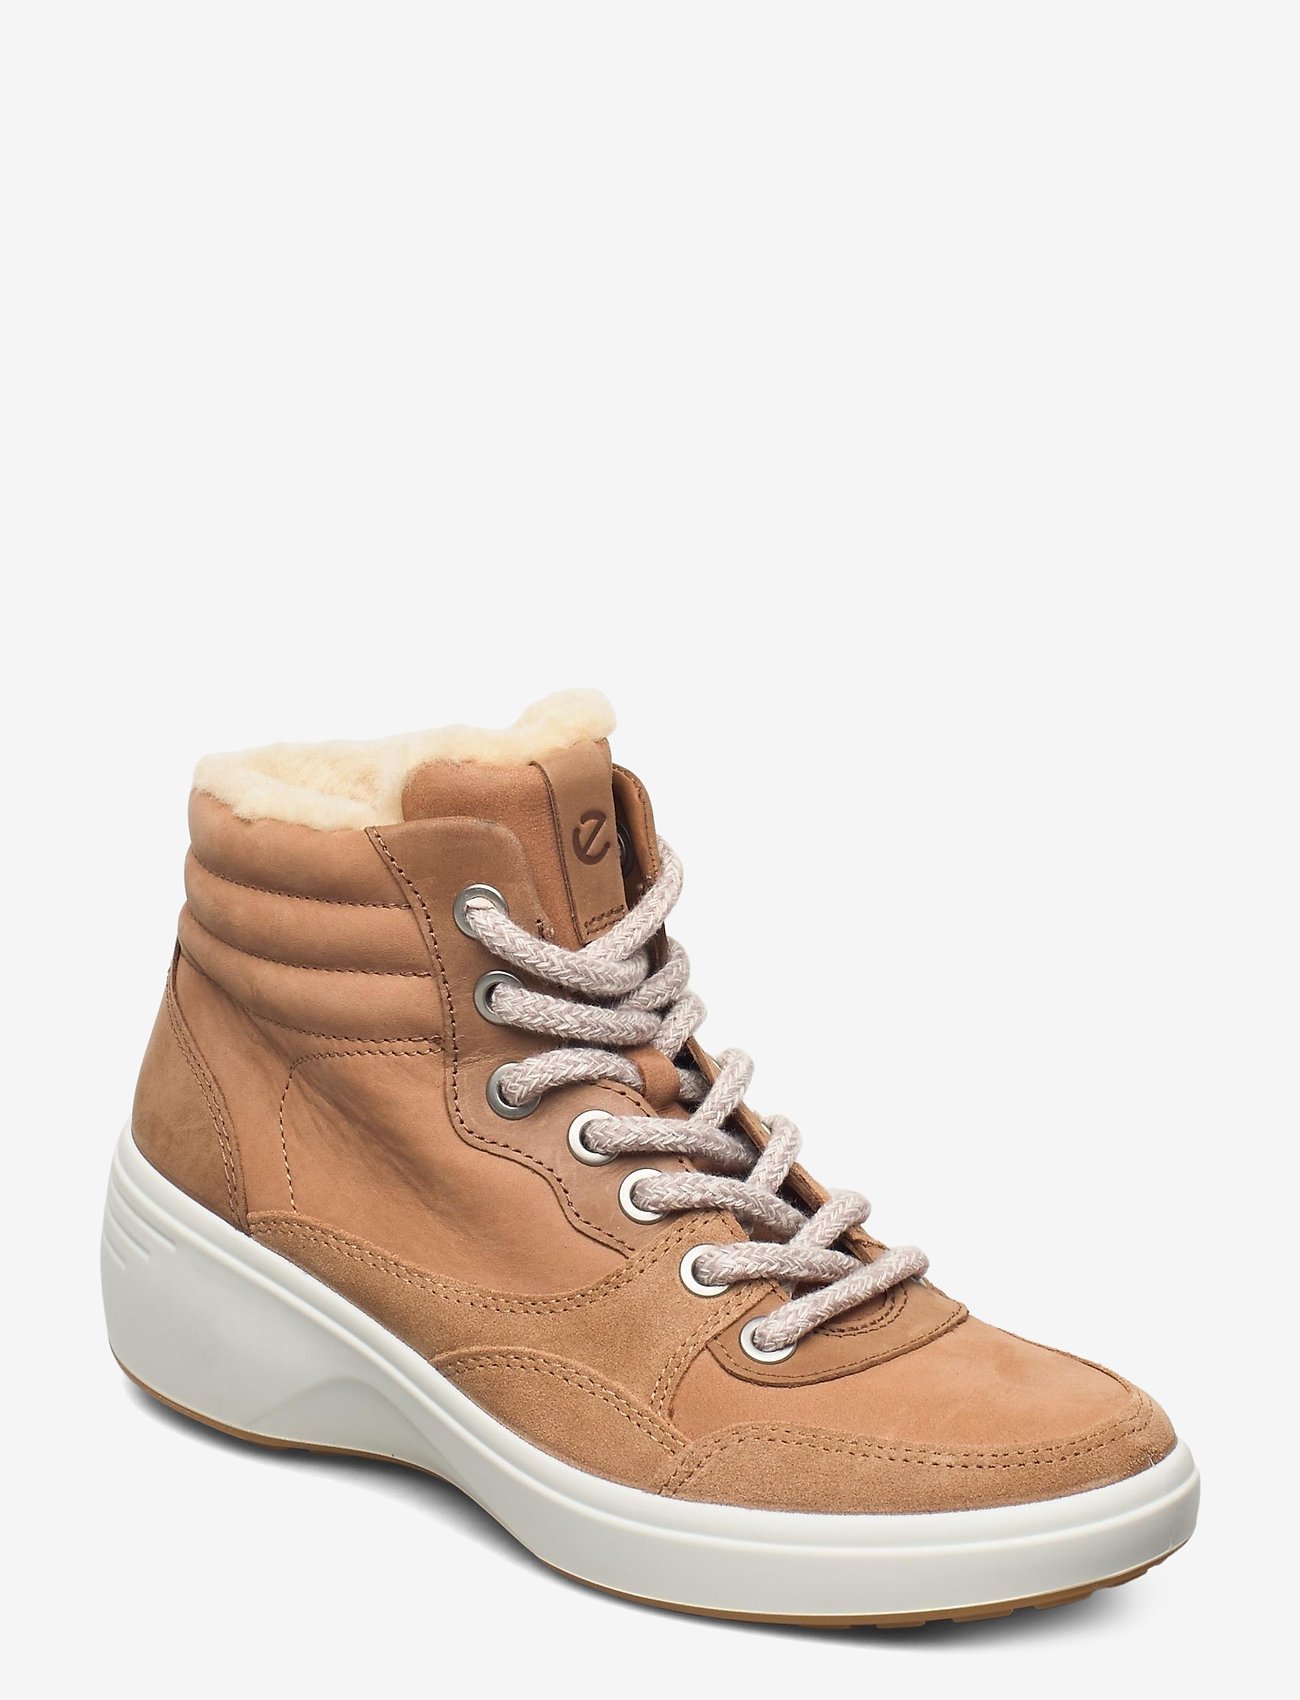 ECCO - SOFT 7 WEDGE TRED - flat ankle boots - cashmere/cashmere/whiskey - 0